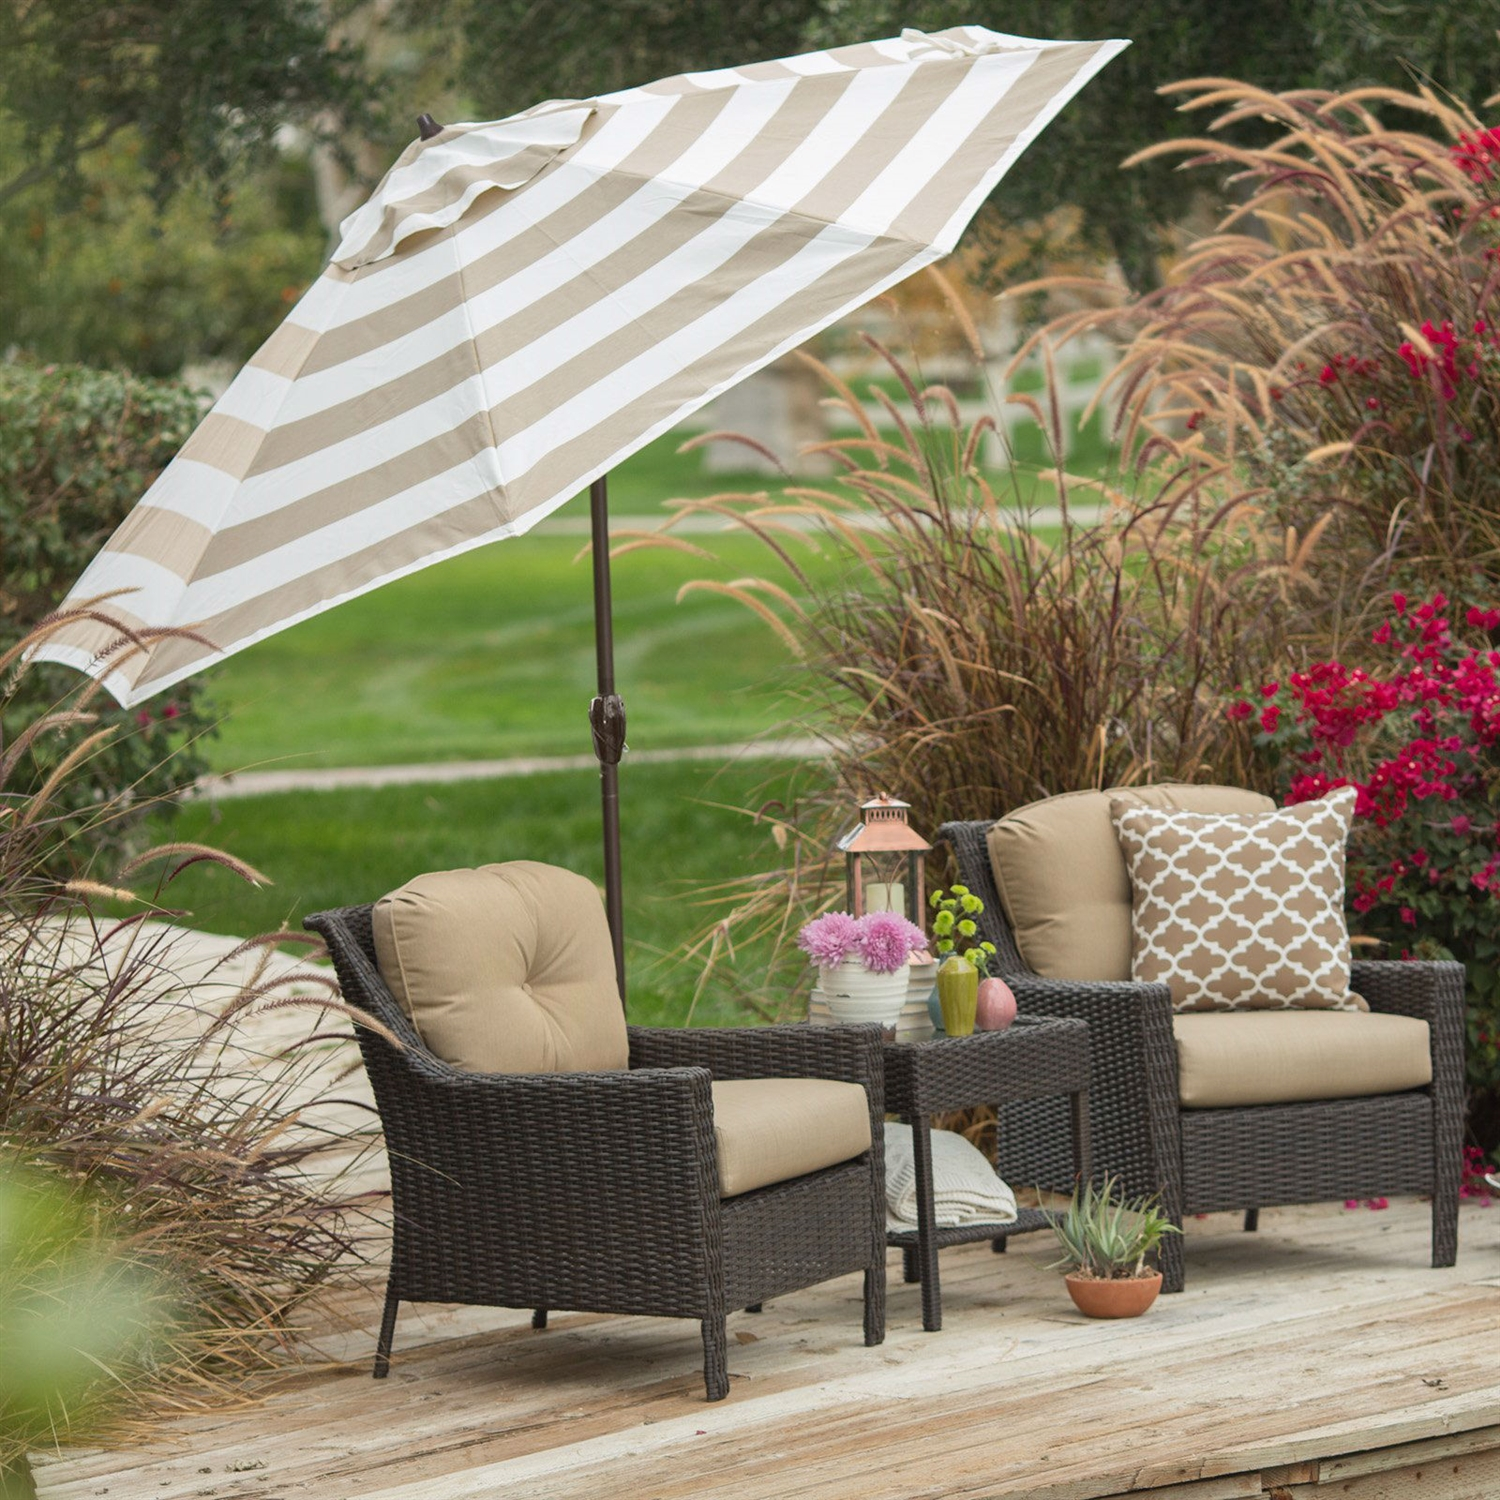 9 Ft Market Umbrella With Tilt And Crank Beige White Stripe Canopy Fastfurnishings